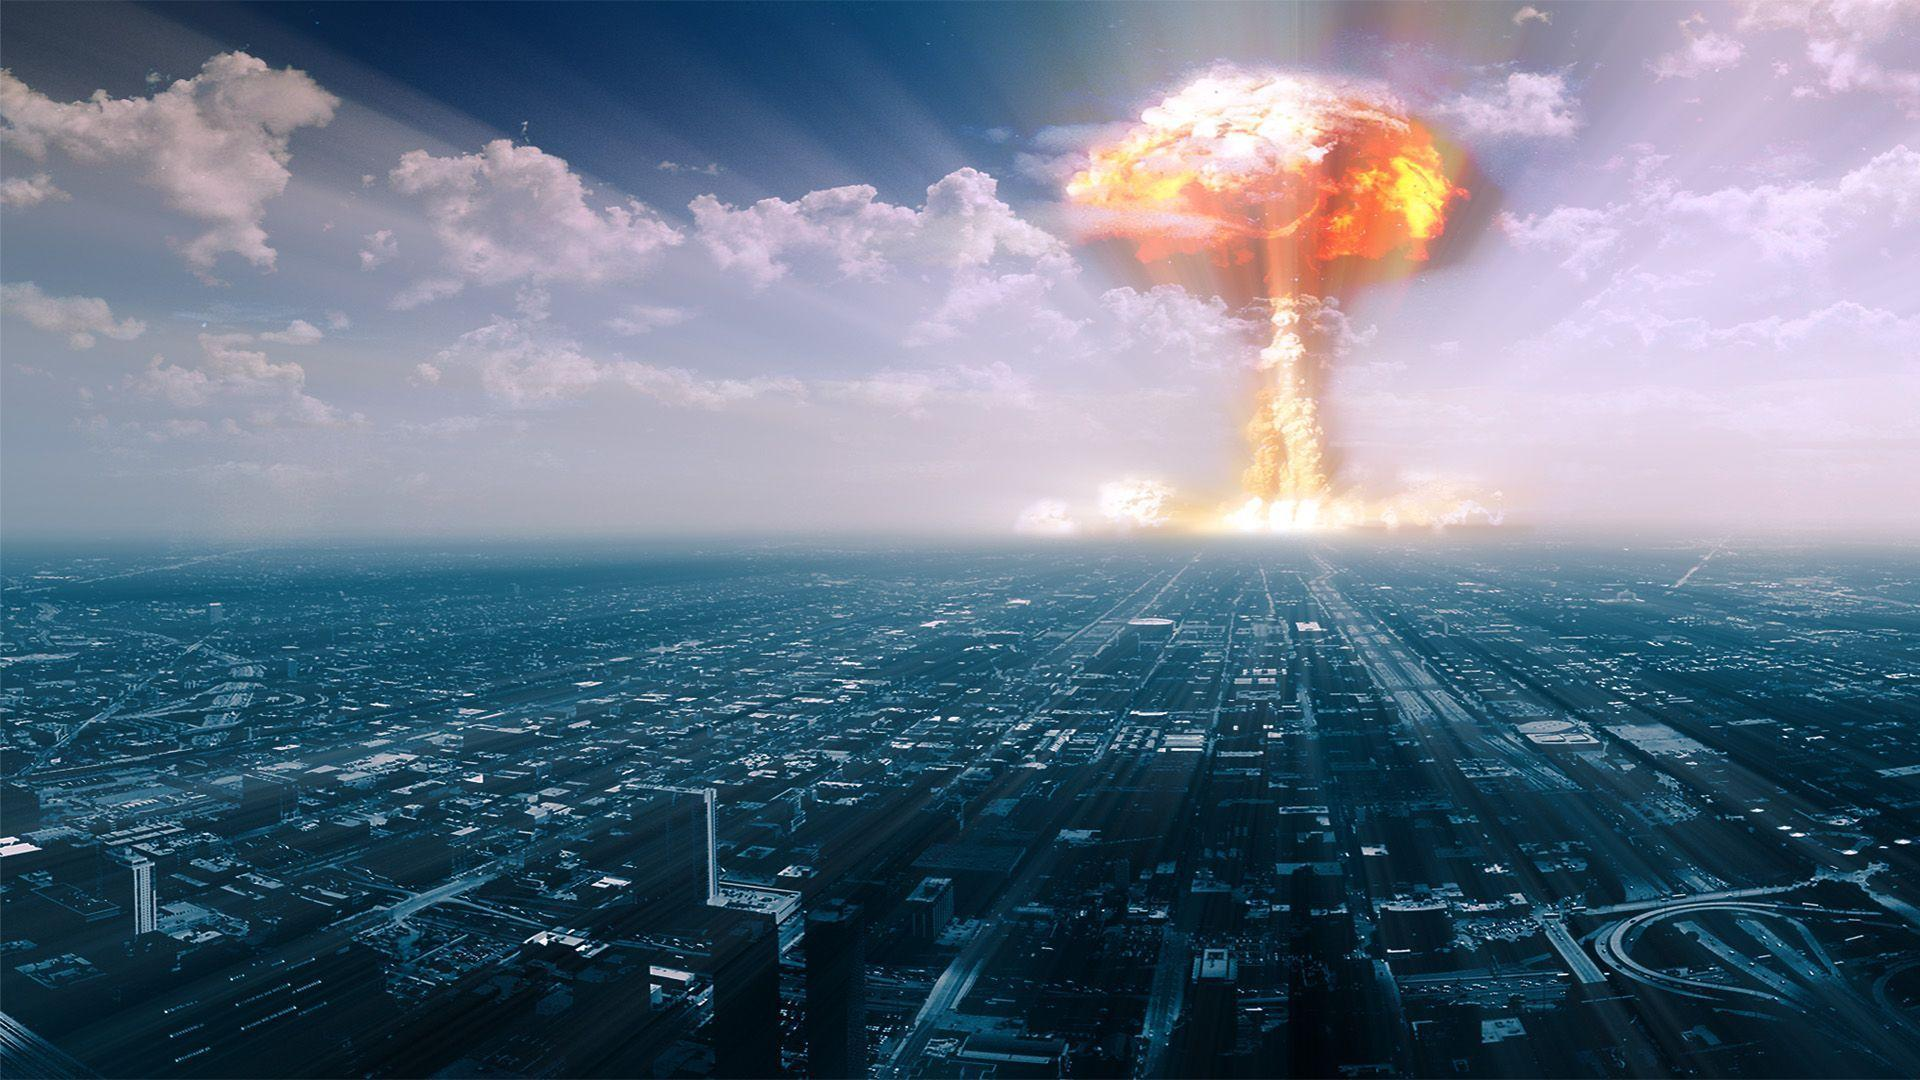 Nuke Explosion Wallpapers 1920x1080